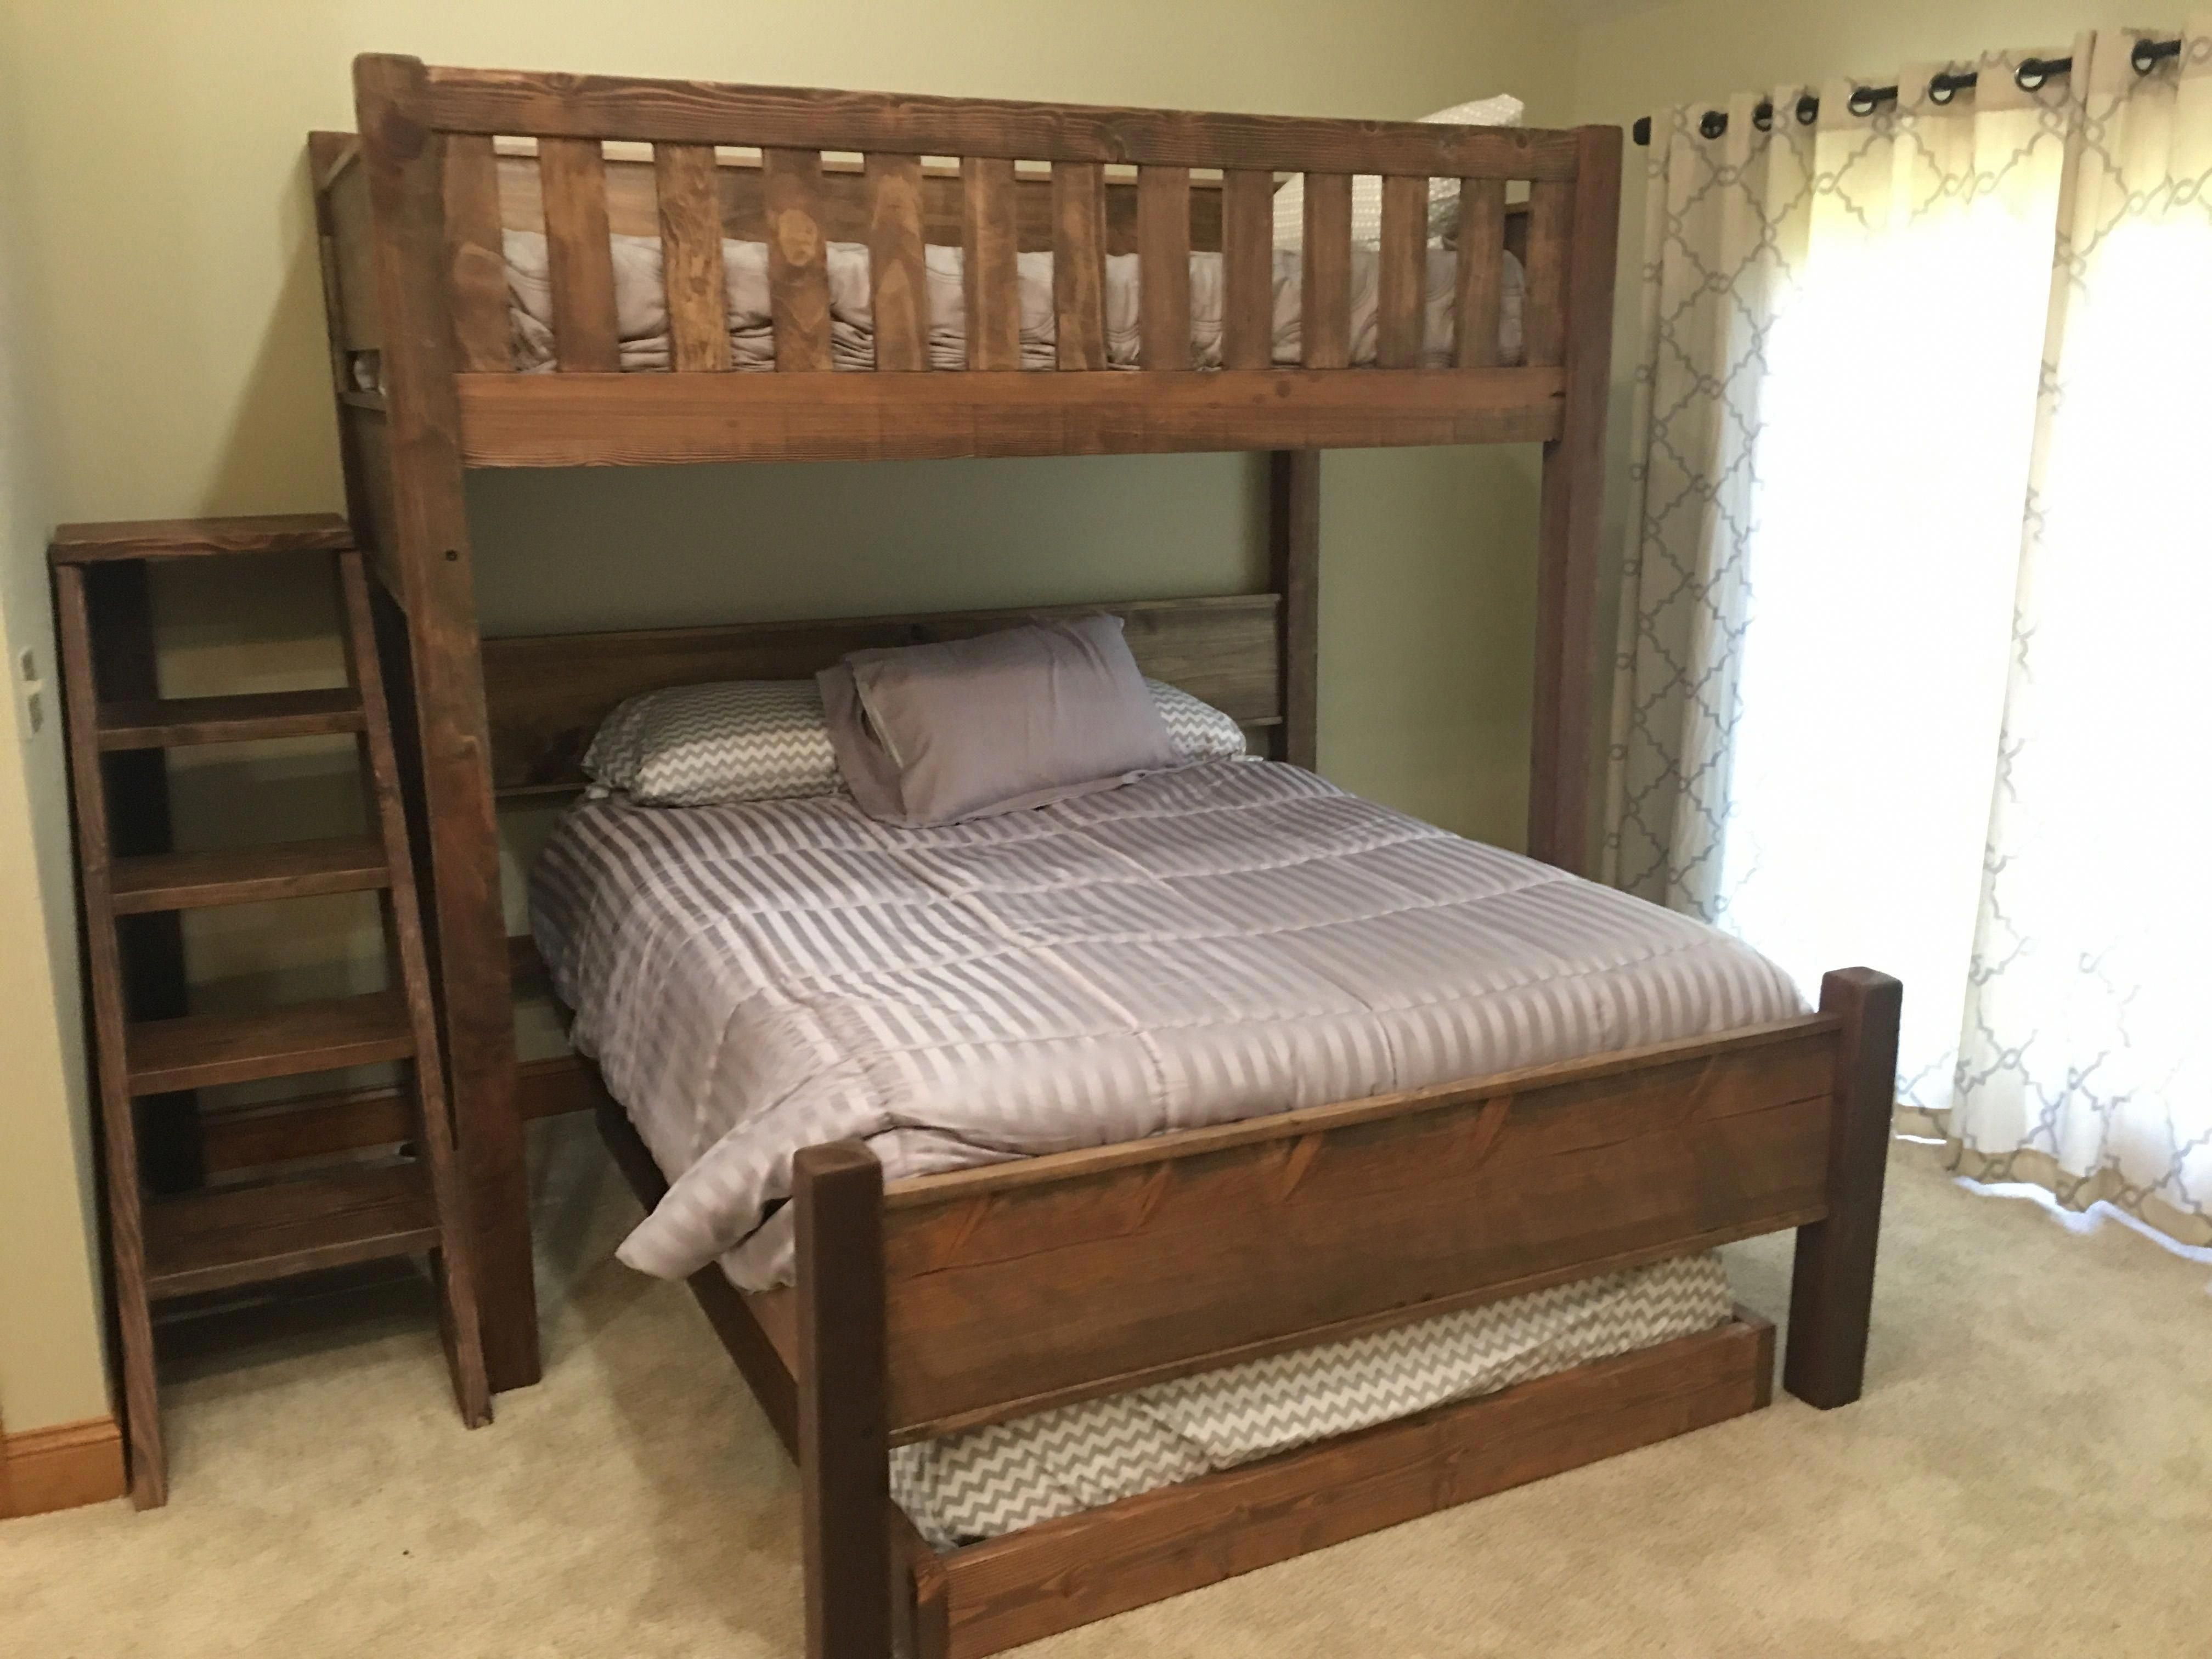 I really love this incredible photo fullsizebunkbeds